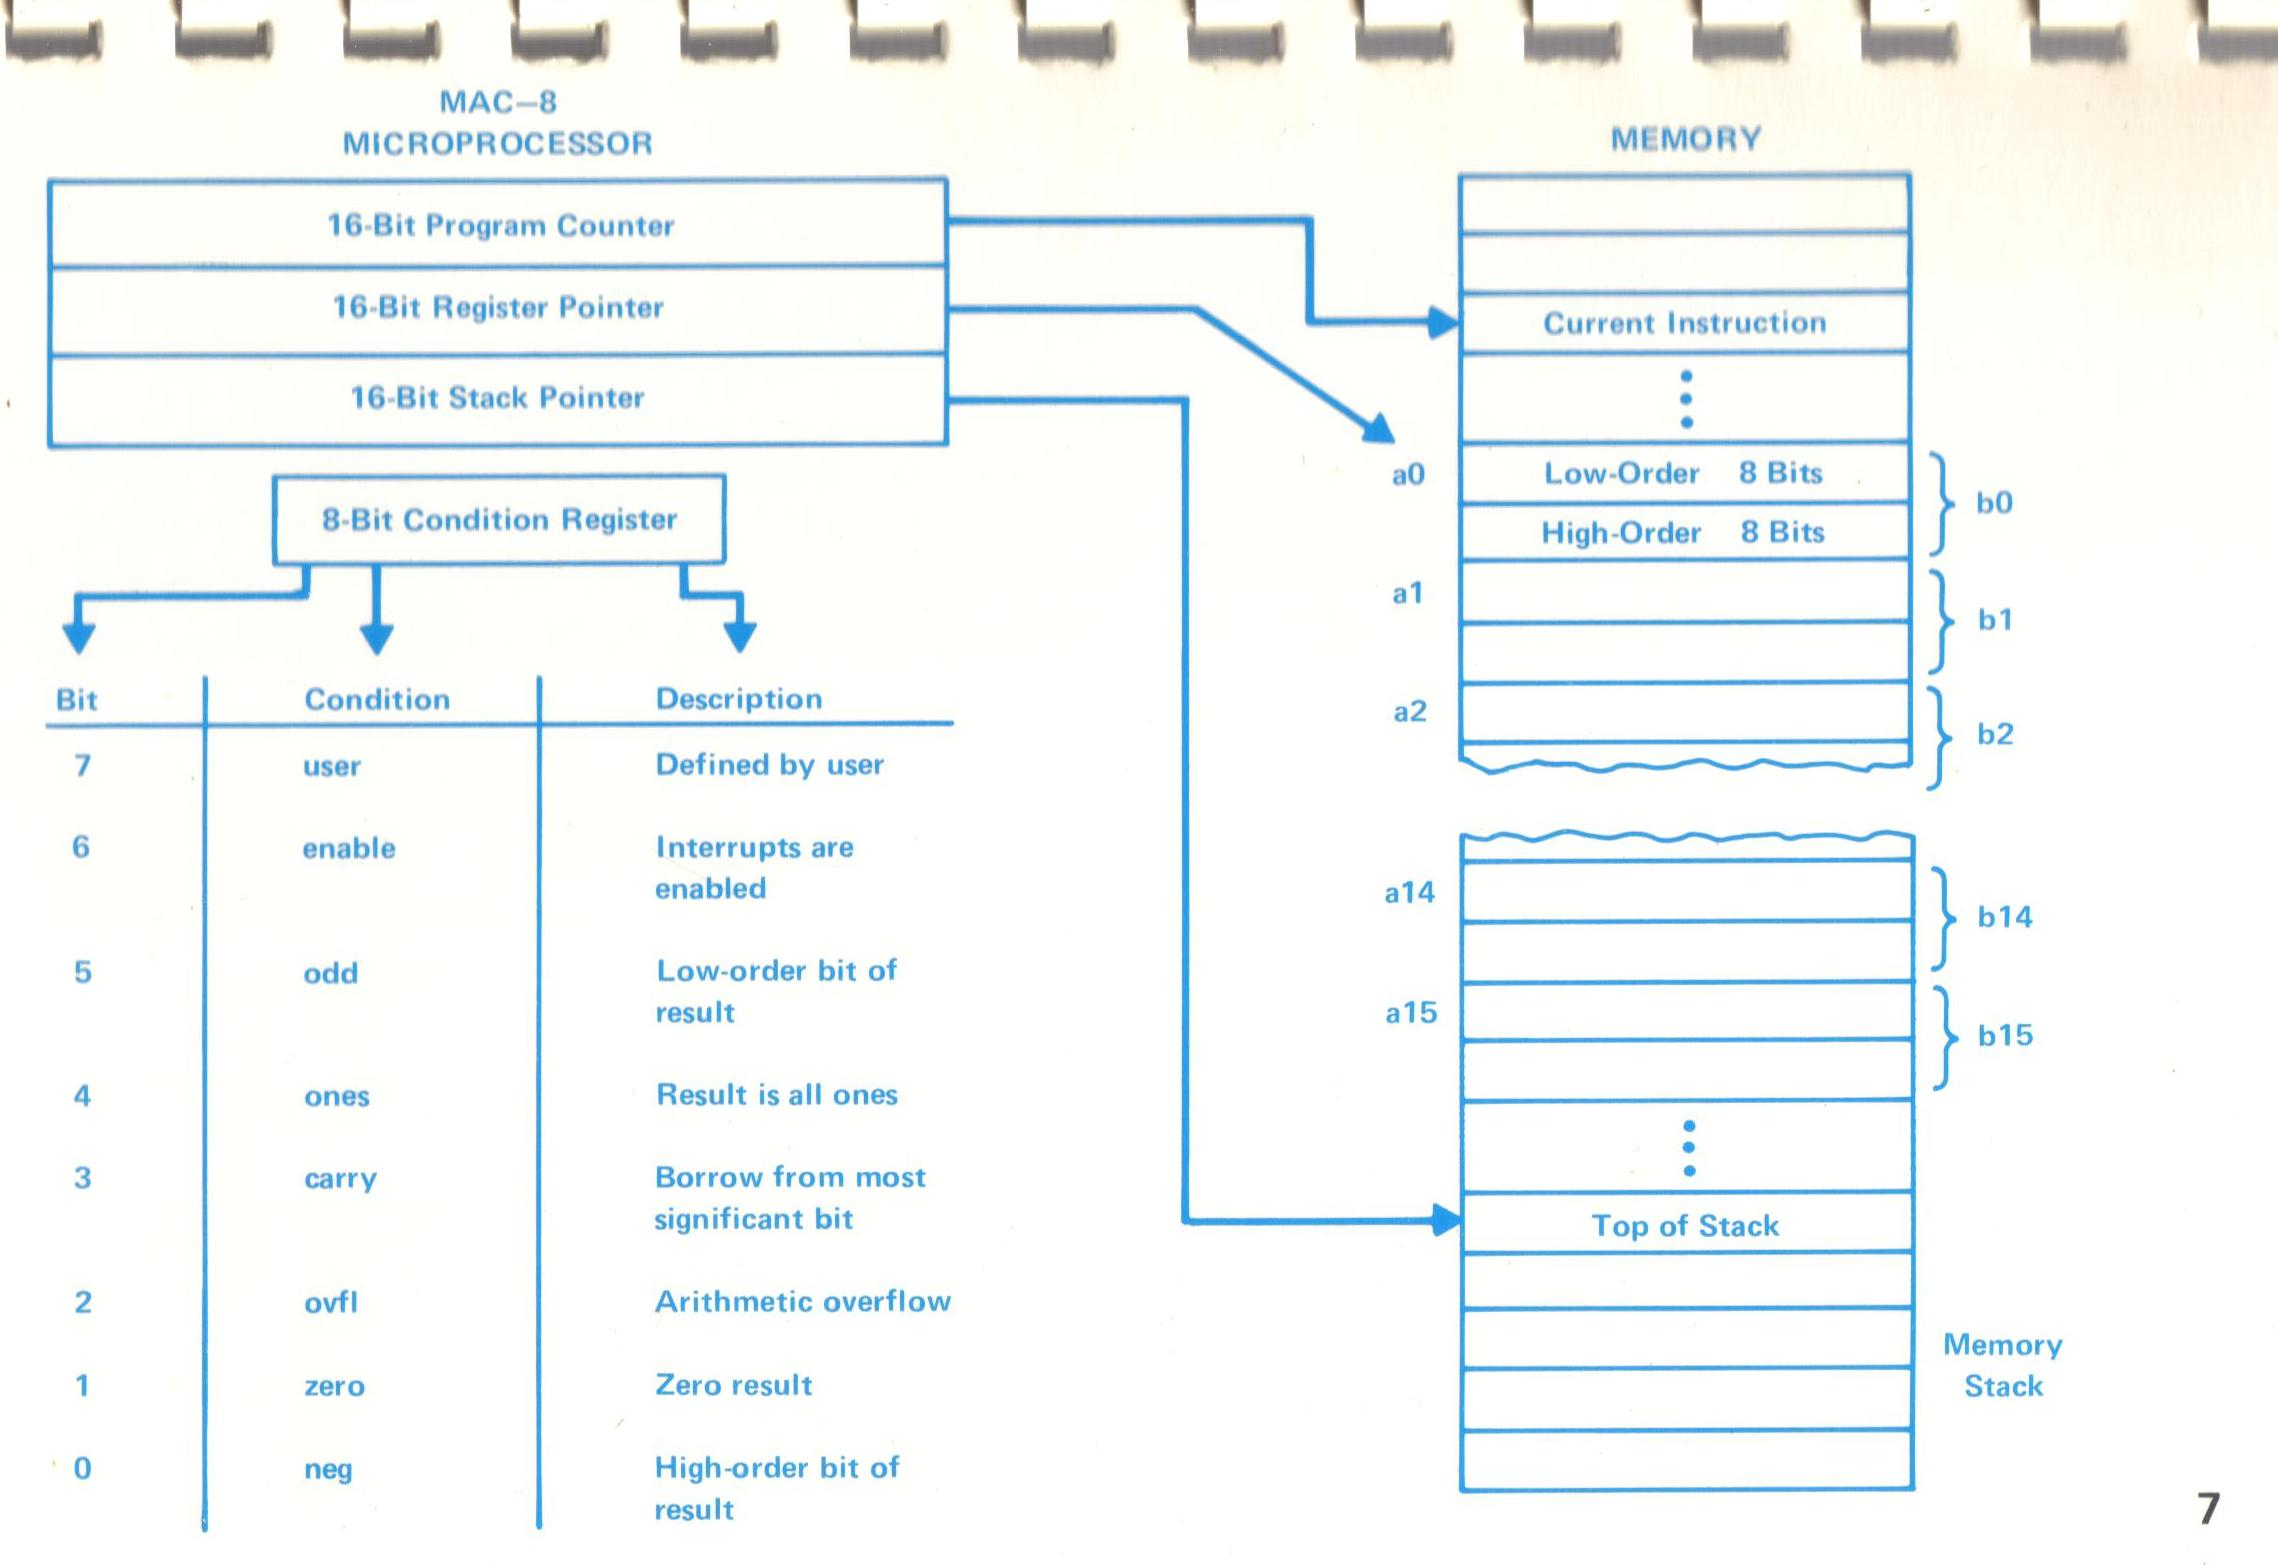 The Bell Laboratories Mac Tutor Bellmac 8 Microprocessor Bit Microcontroller Block Diagram Rp Register Points To Of Registers